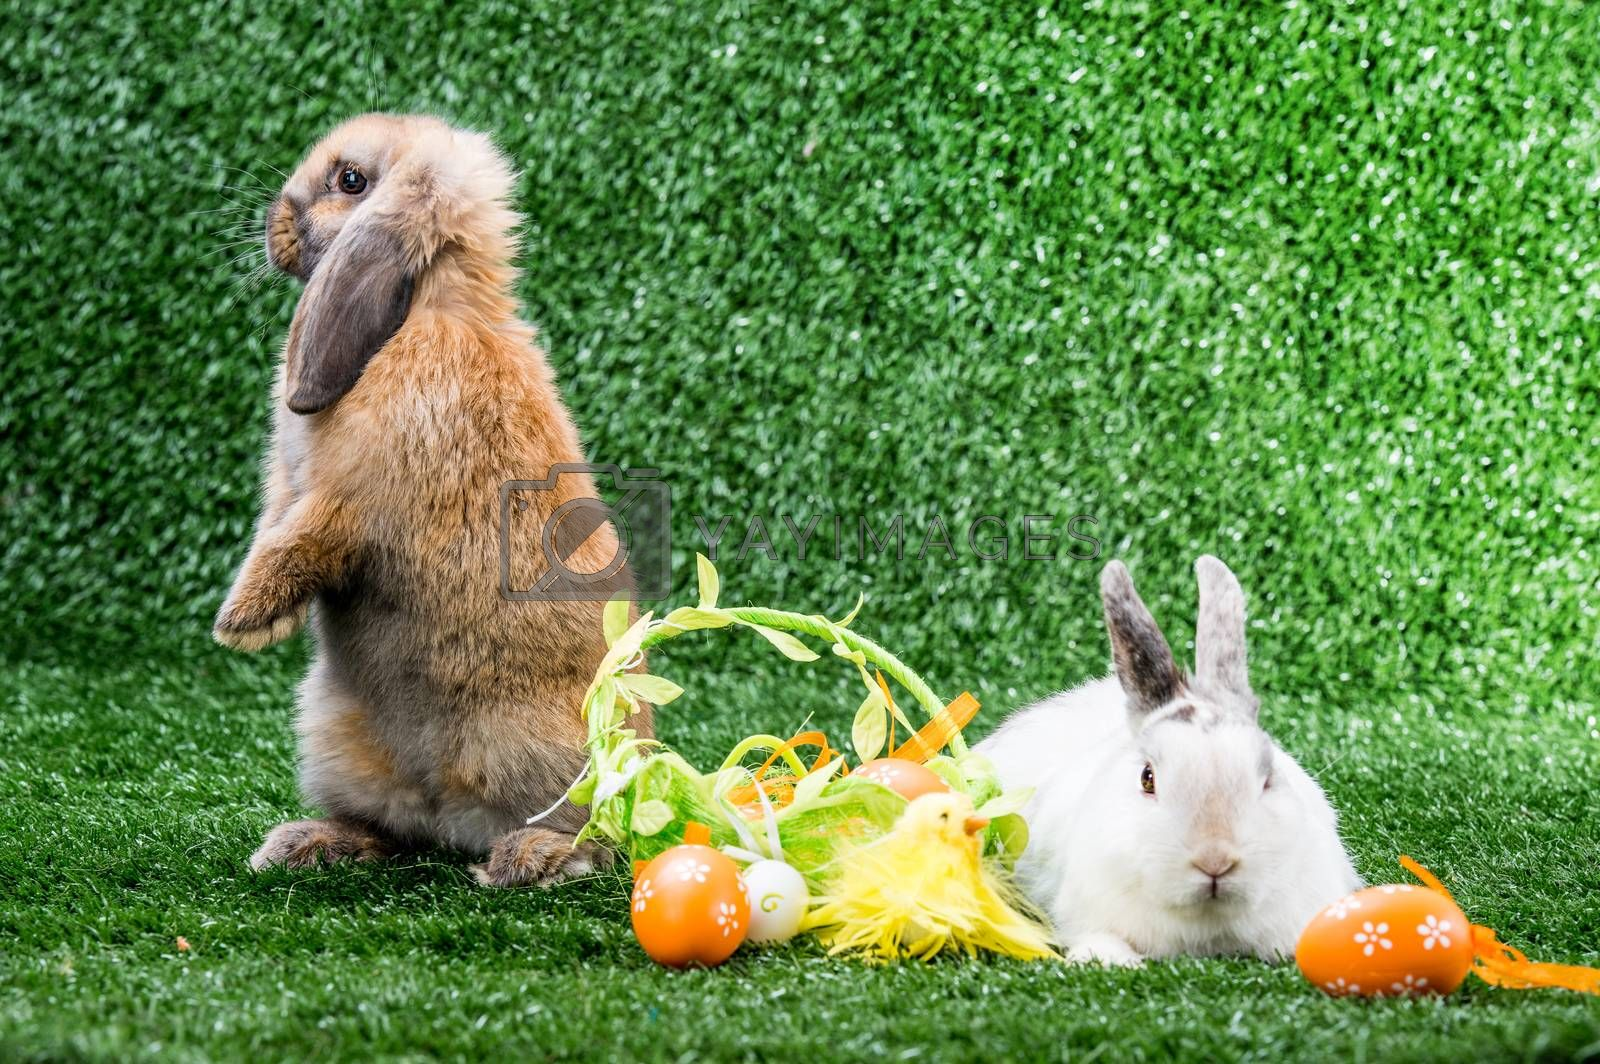 Royalty free image of two rabbits on grass by GekaSkr